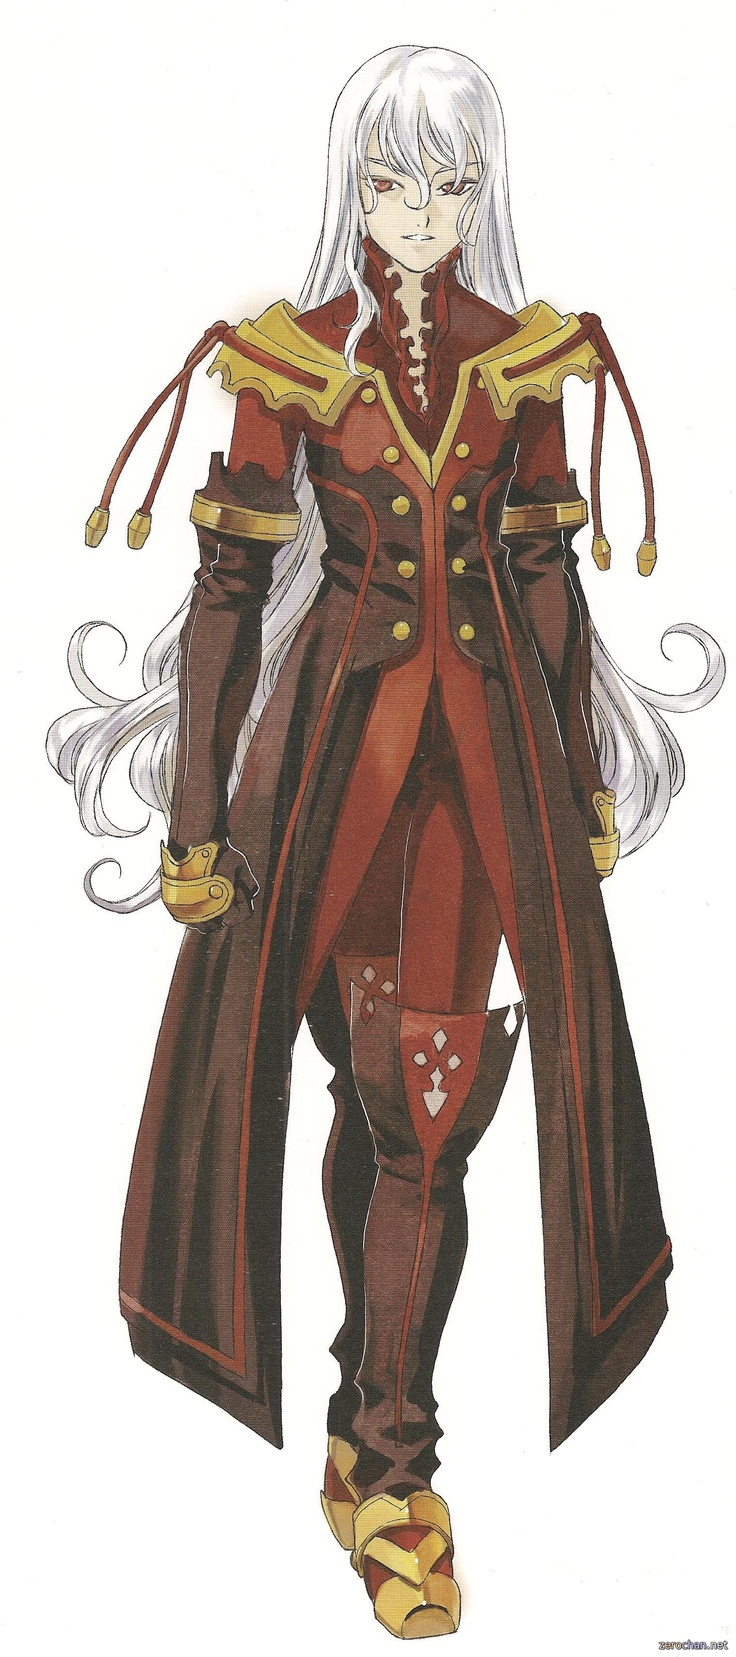 Duke, Tales of Vesperia Not technically an anime but still awesome.